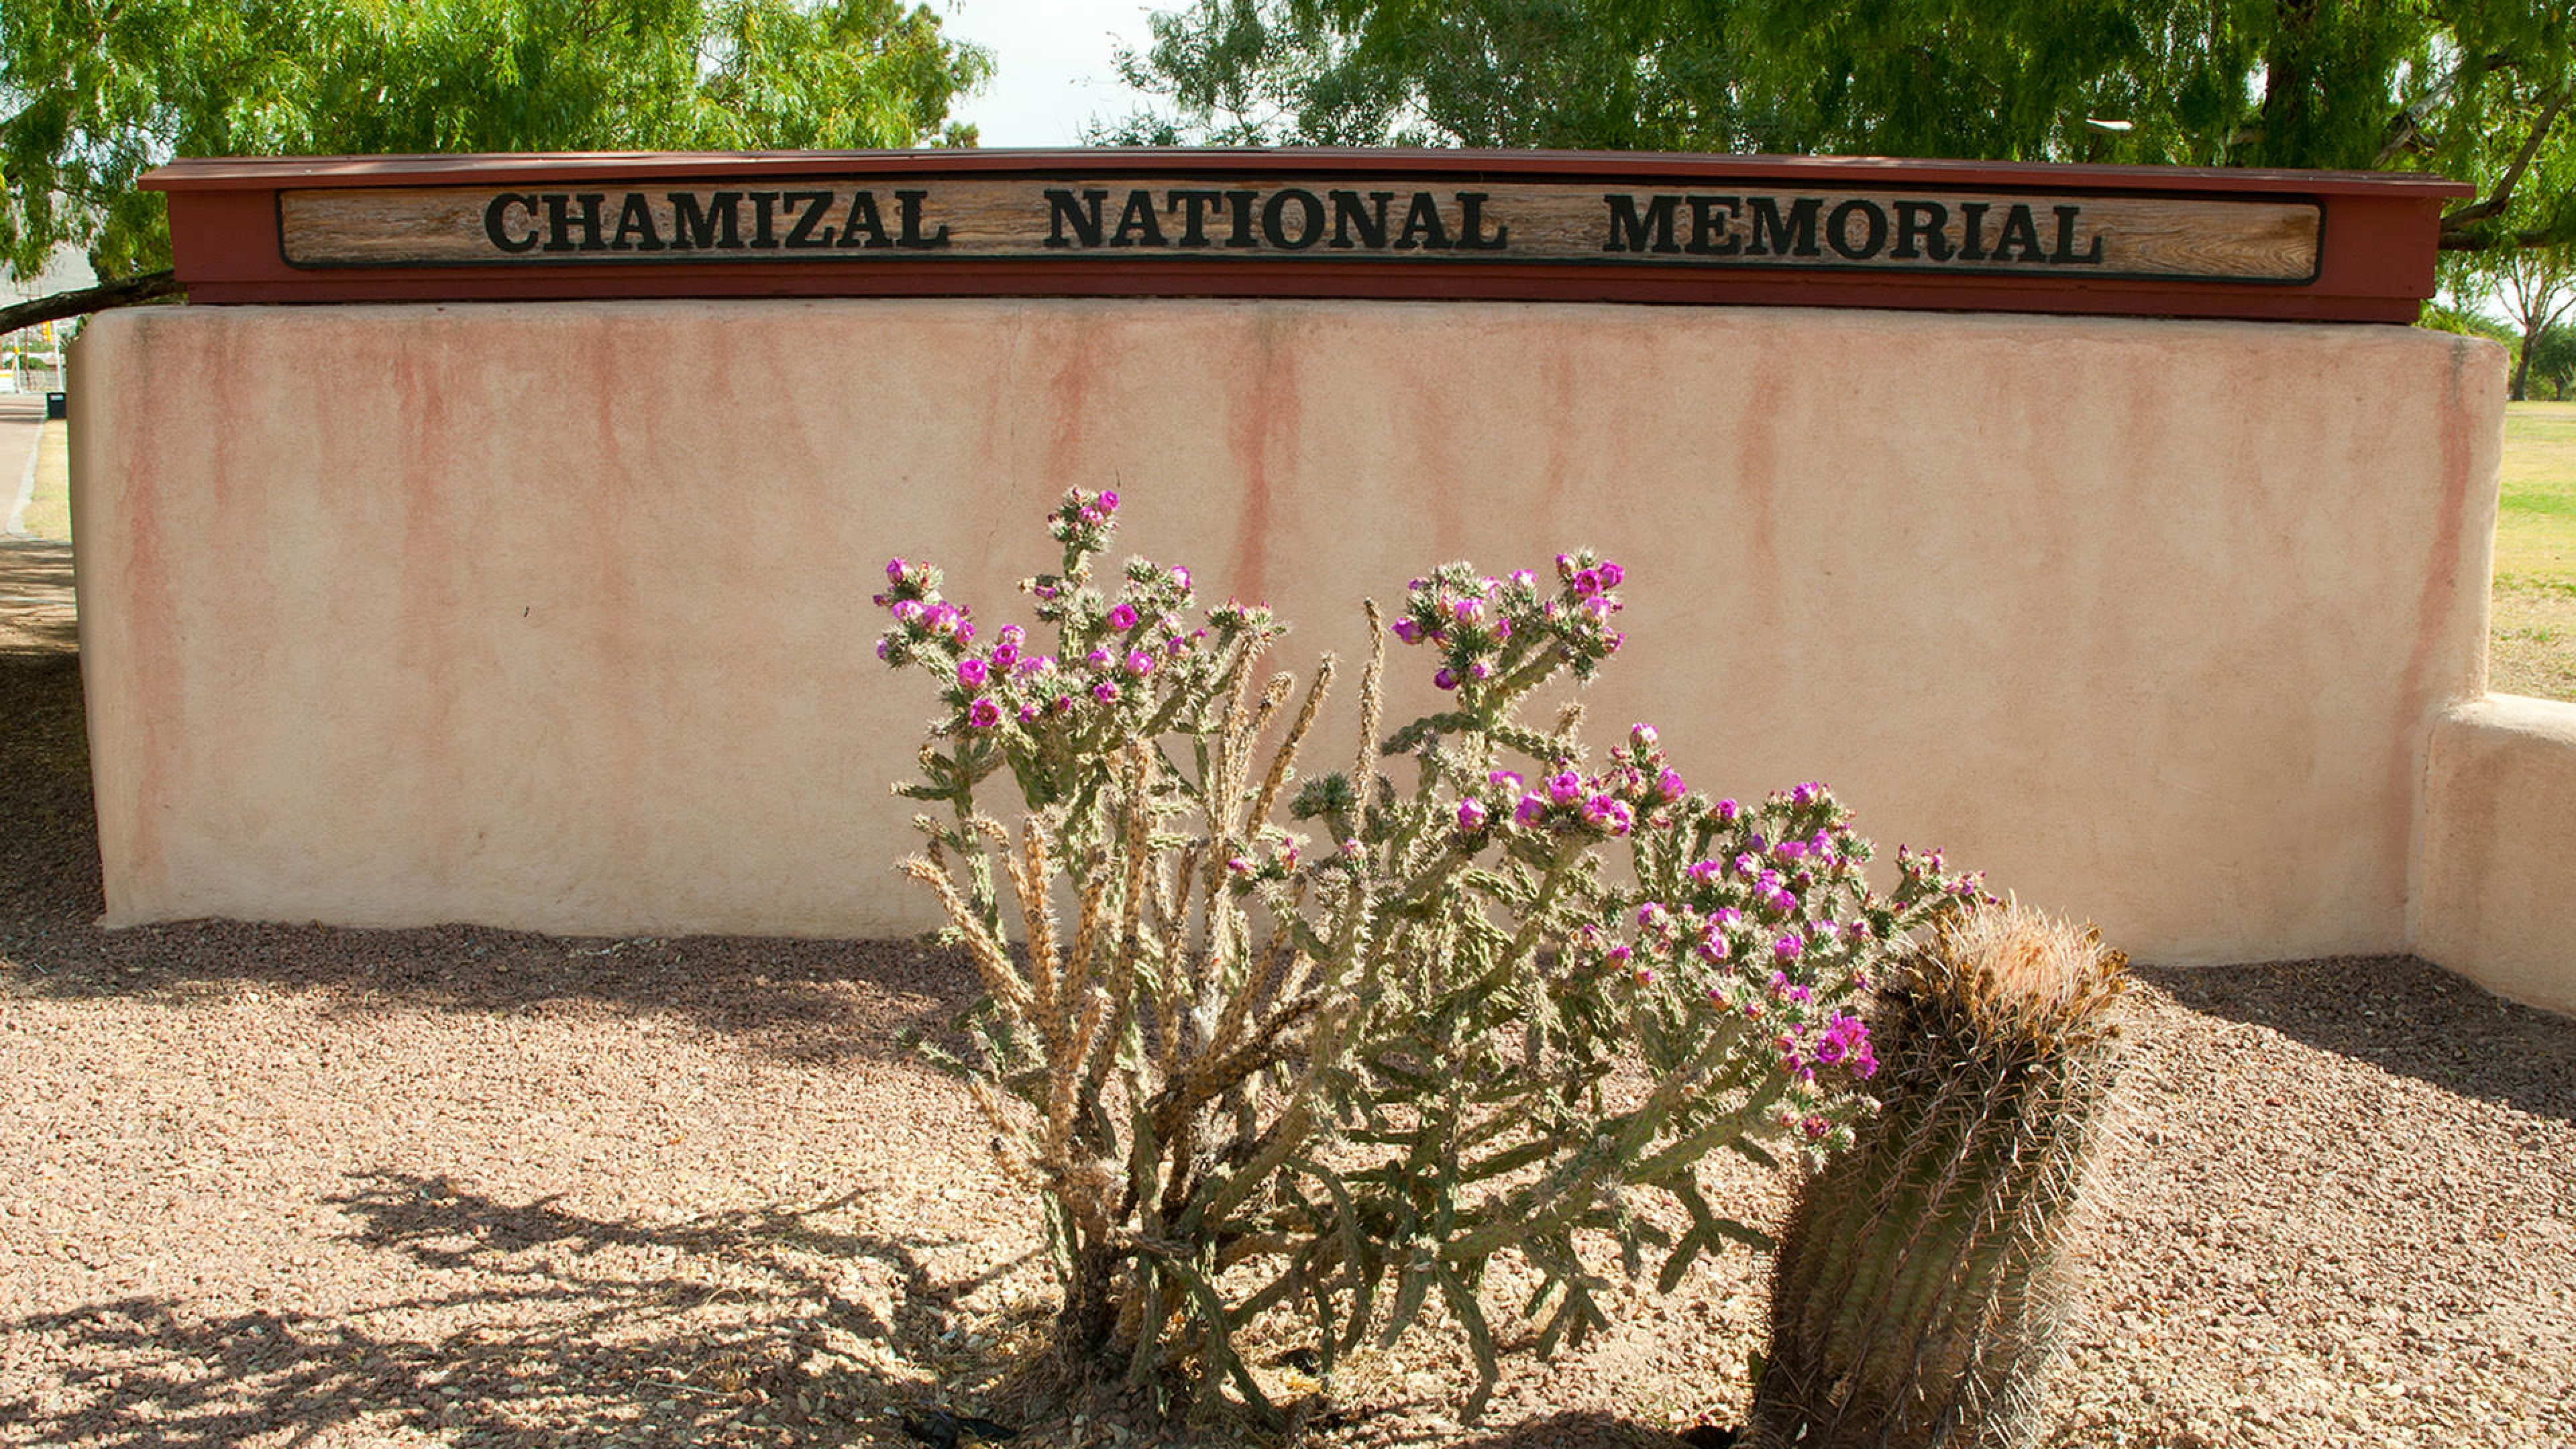 Sign for Chamizal National Memorial